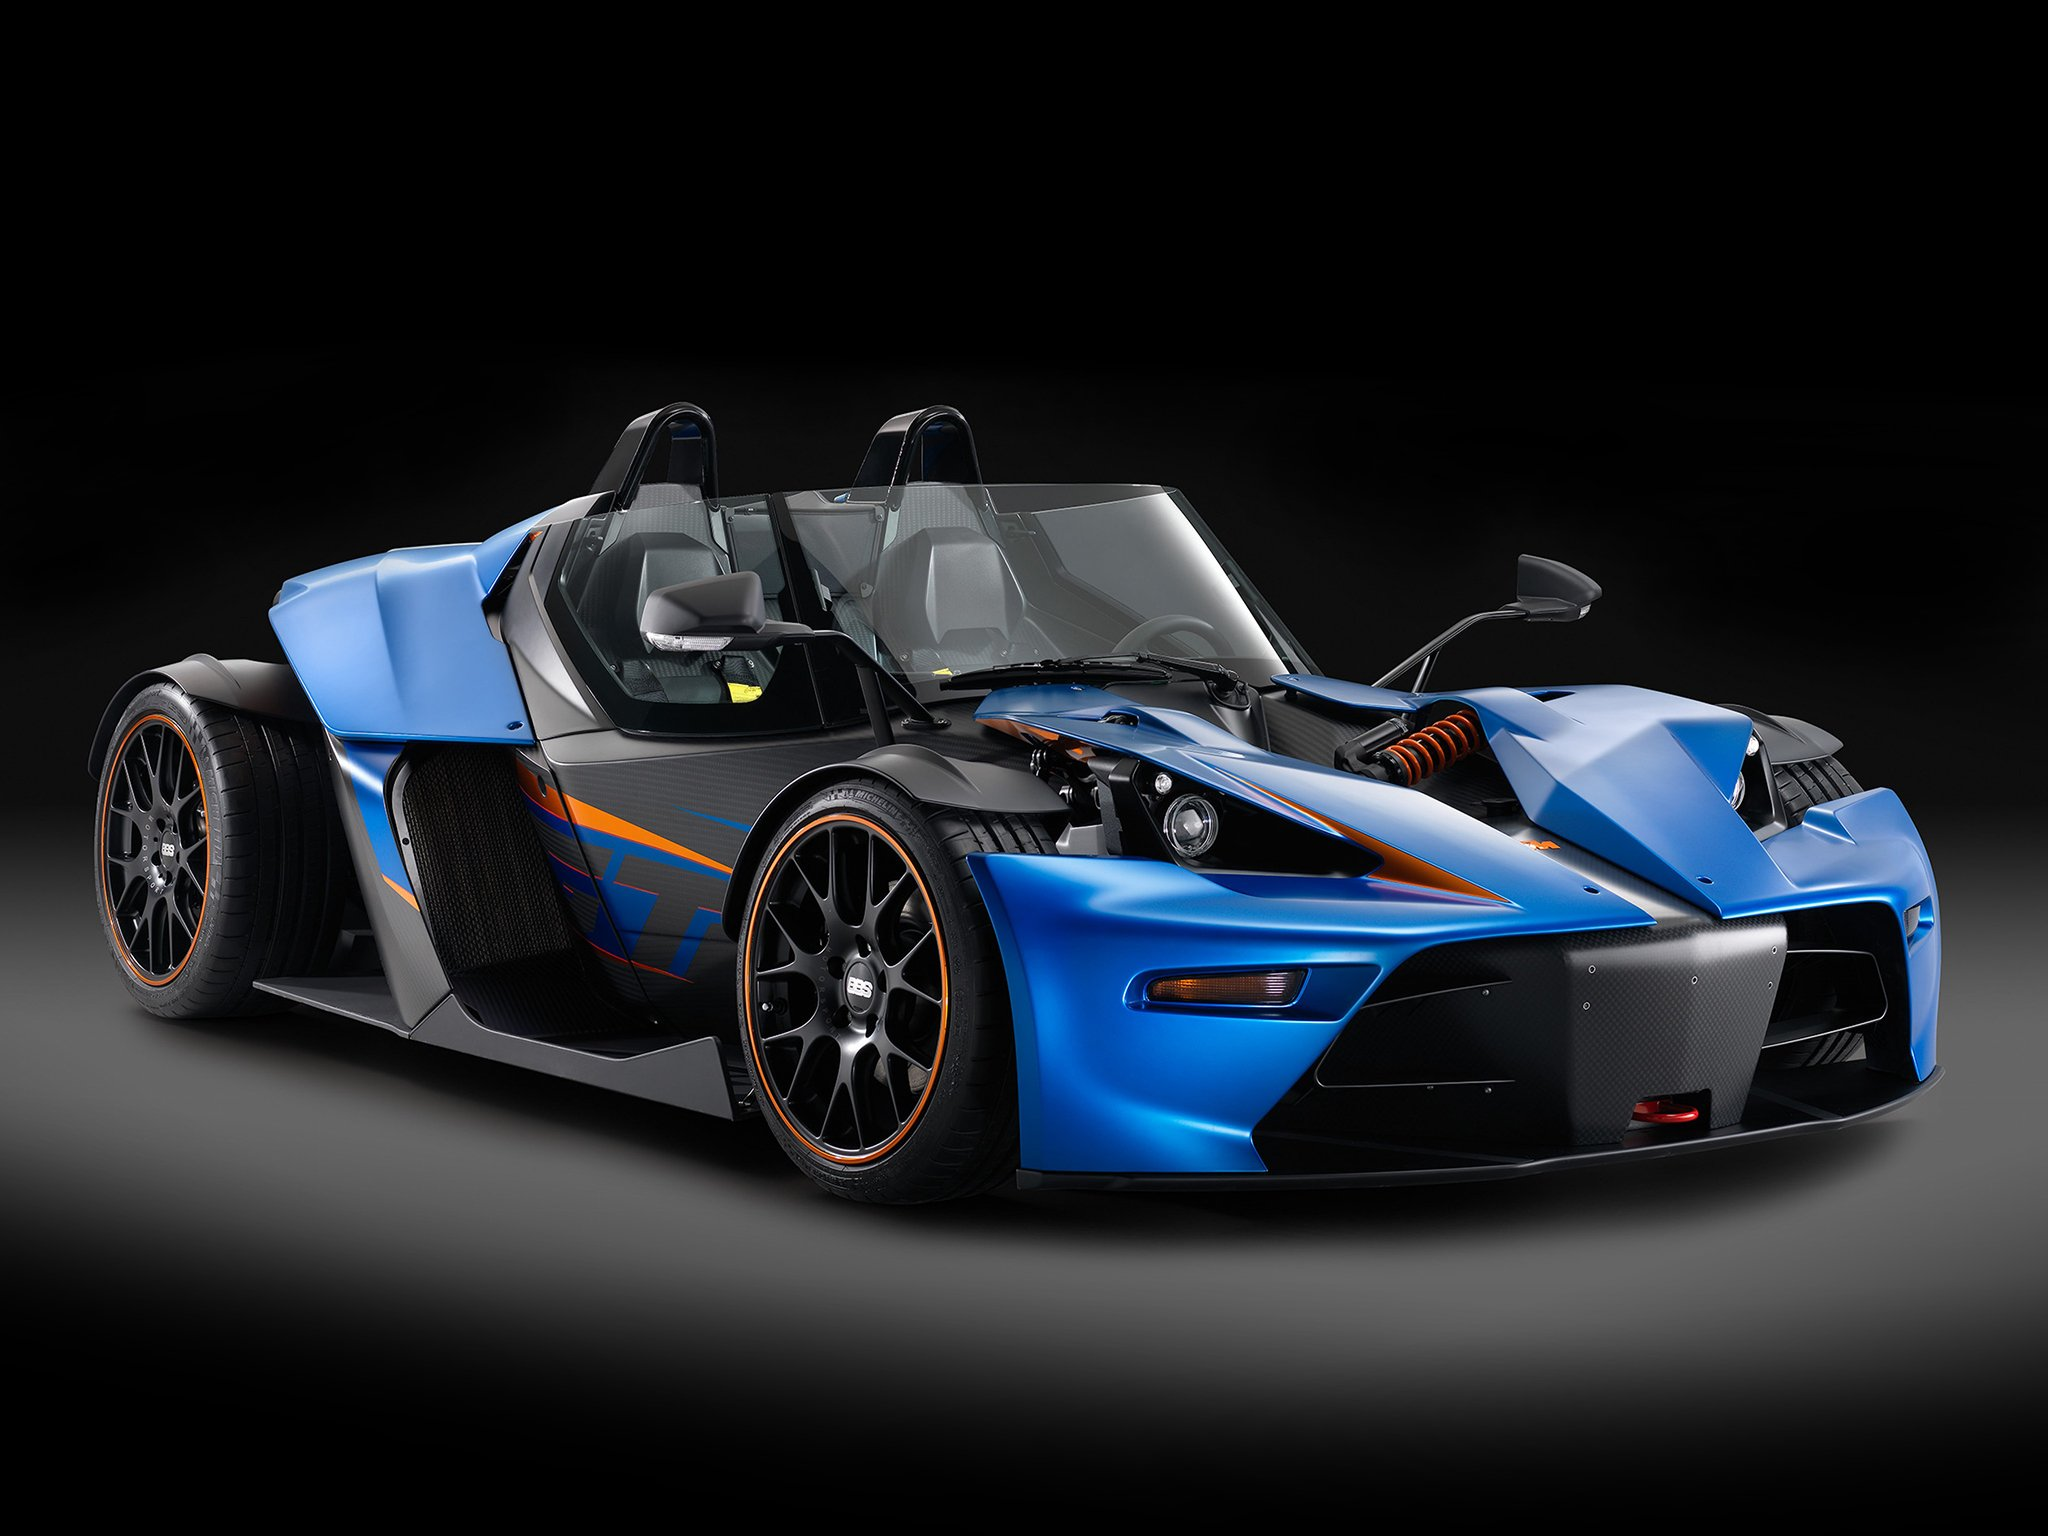 2013 KTM X Bow G T Supercar Wallpaper